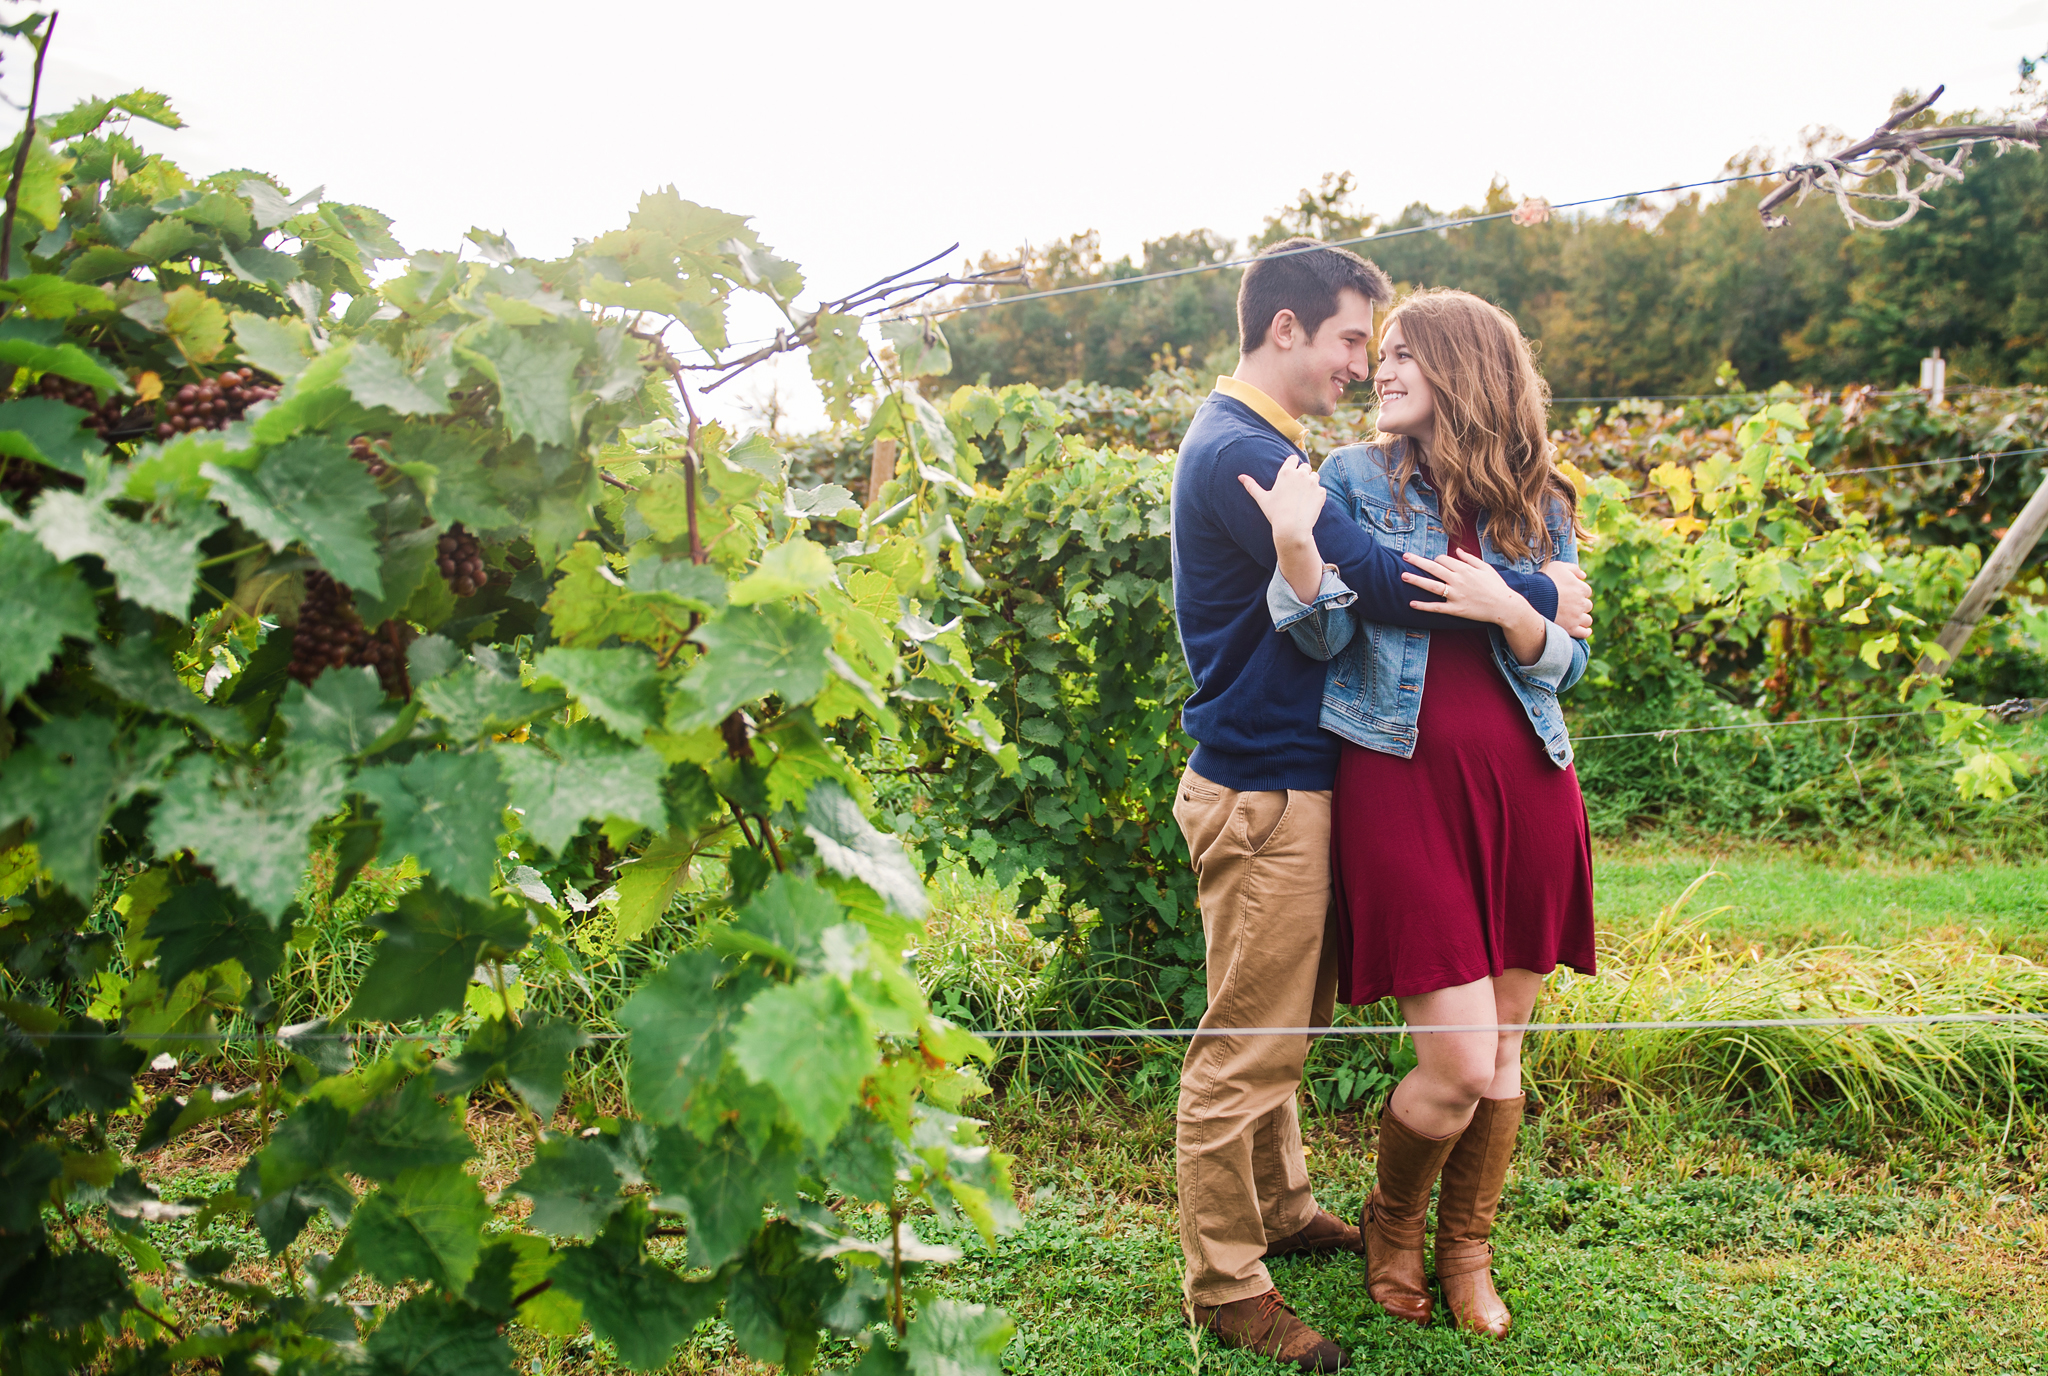 Becker_Farms_Buffalo_Engagement_Session_JILL_STUDIO_Rochester_NY_Photographer_DSC_4673.jpg